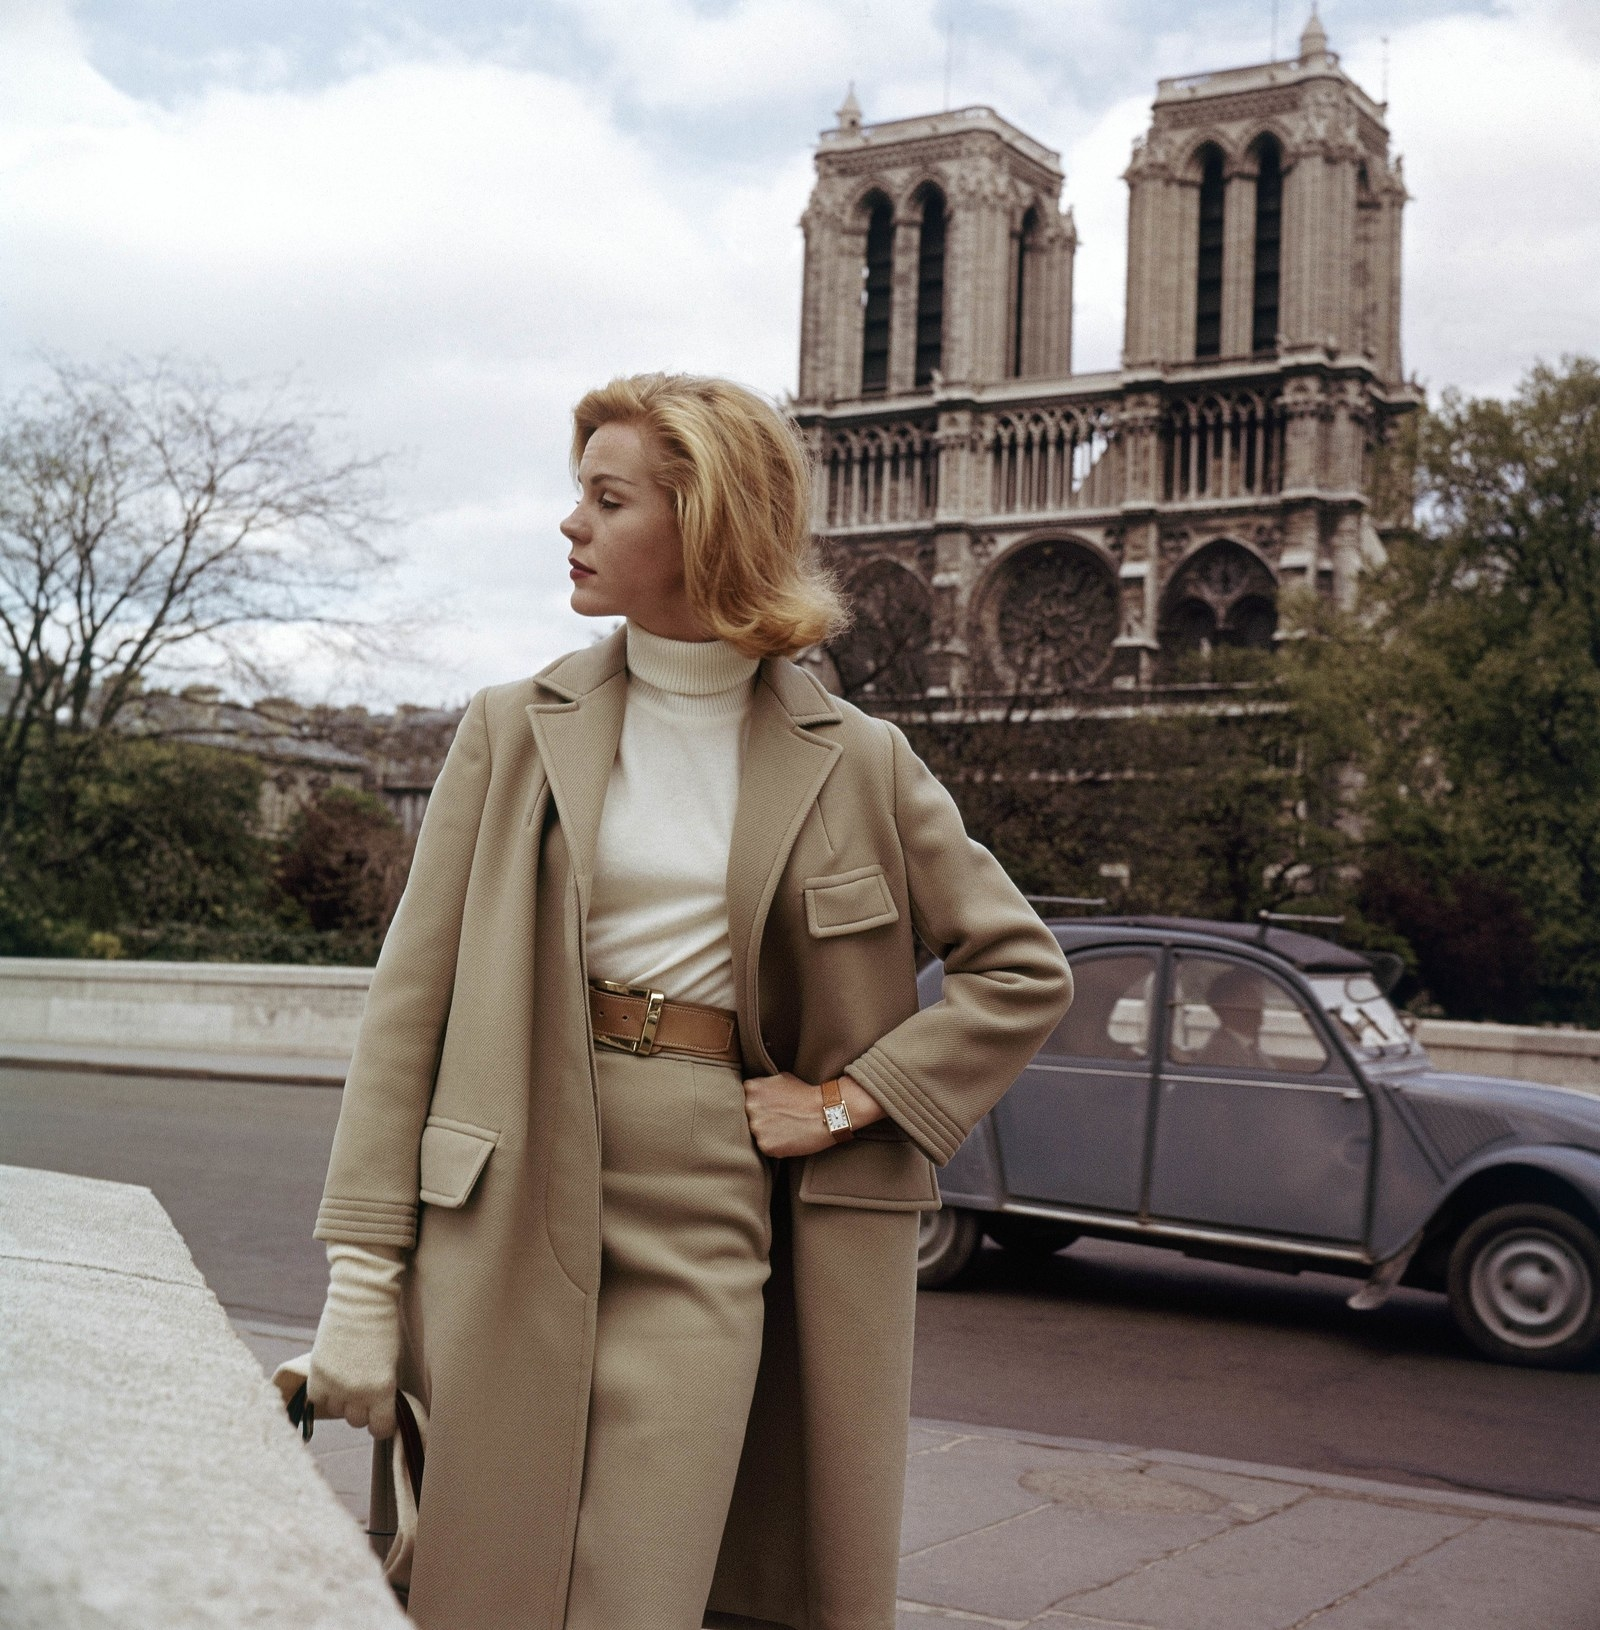 A model poses for a photo in front of Notre Dame Cathedral in 1961.